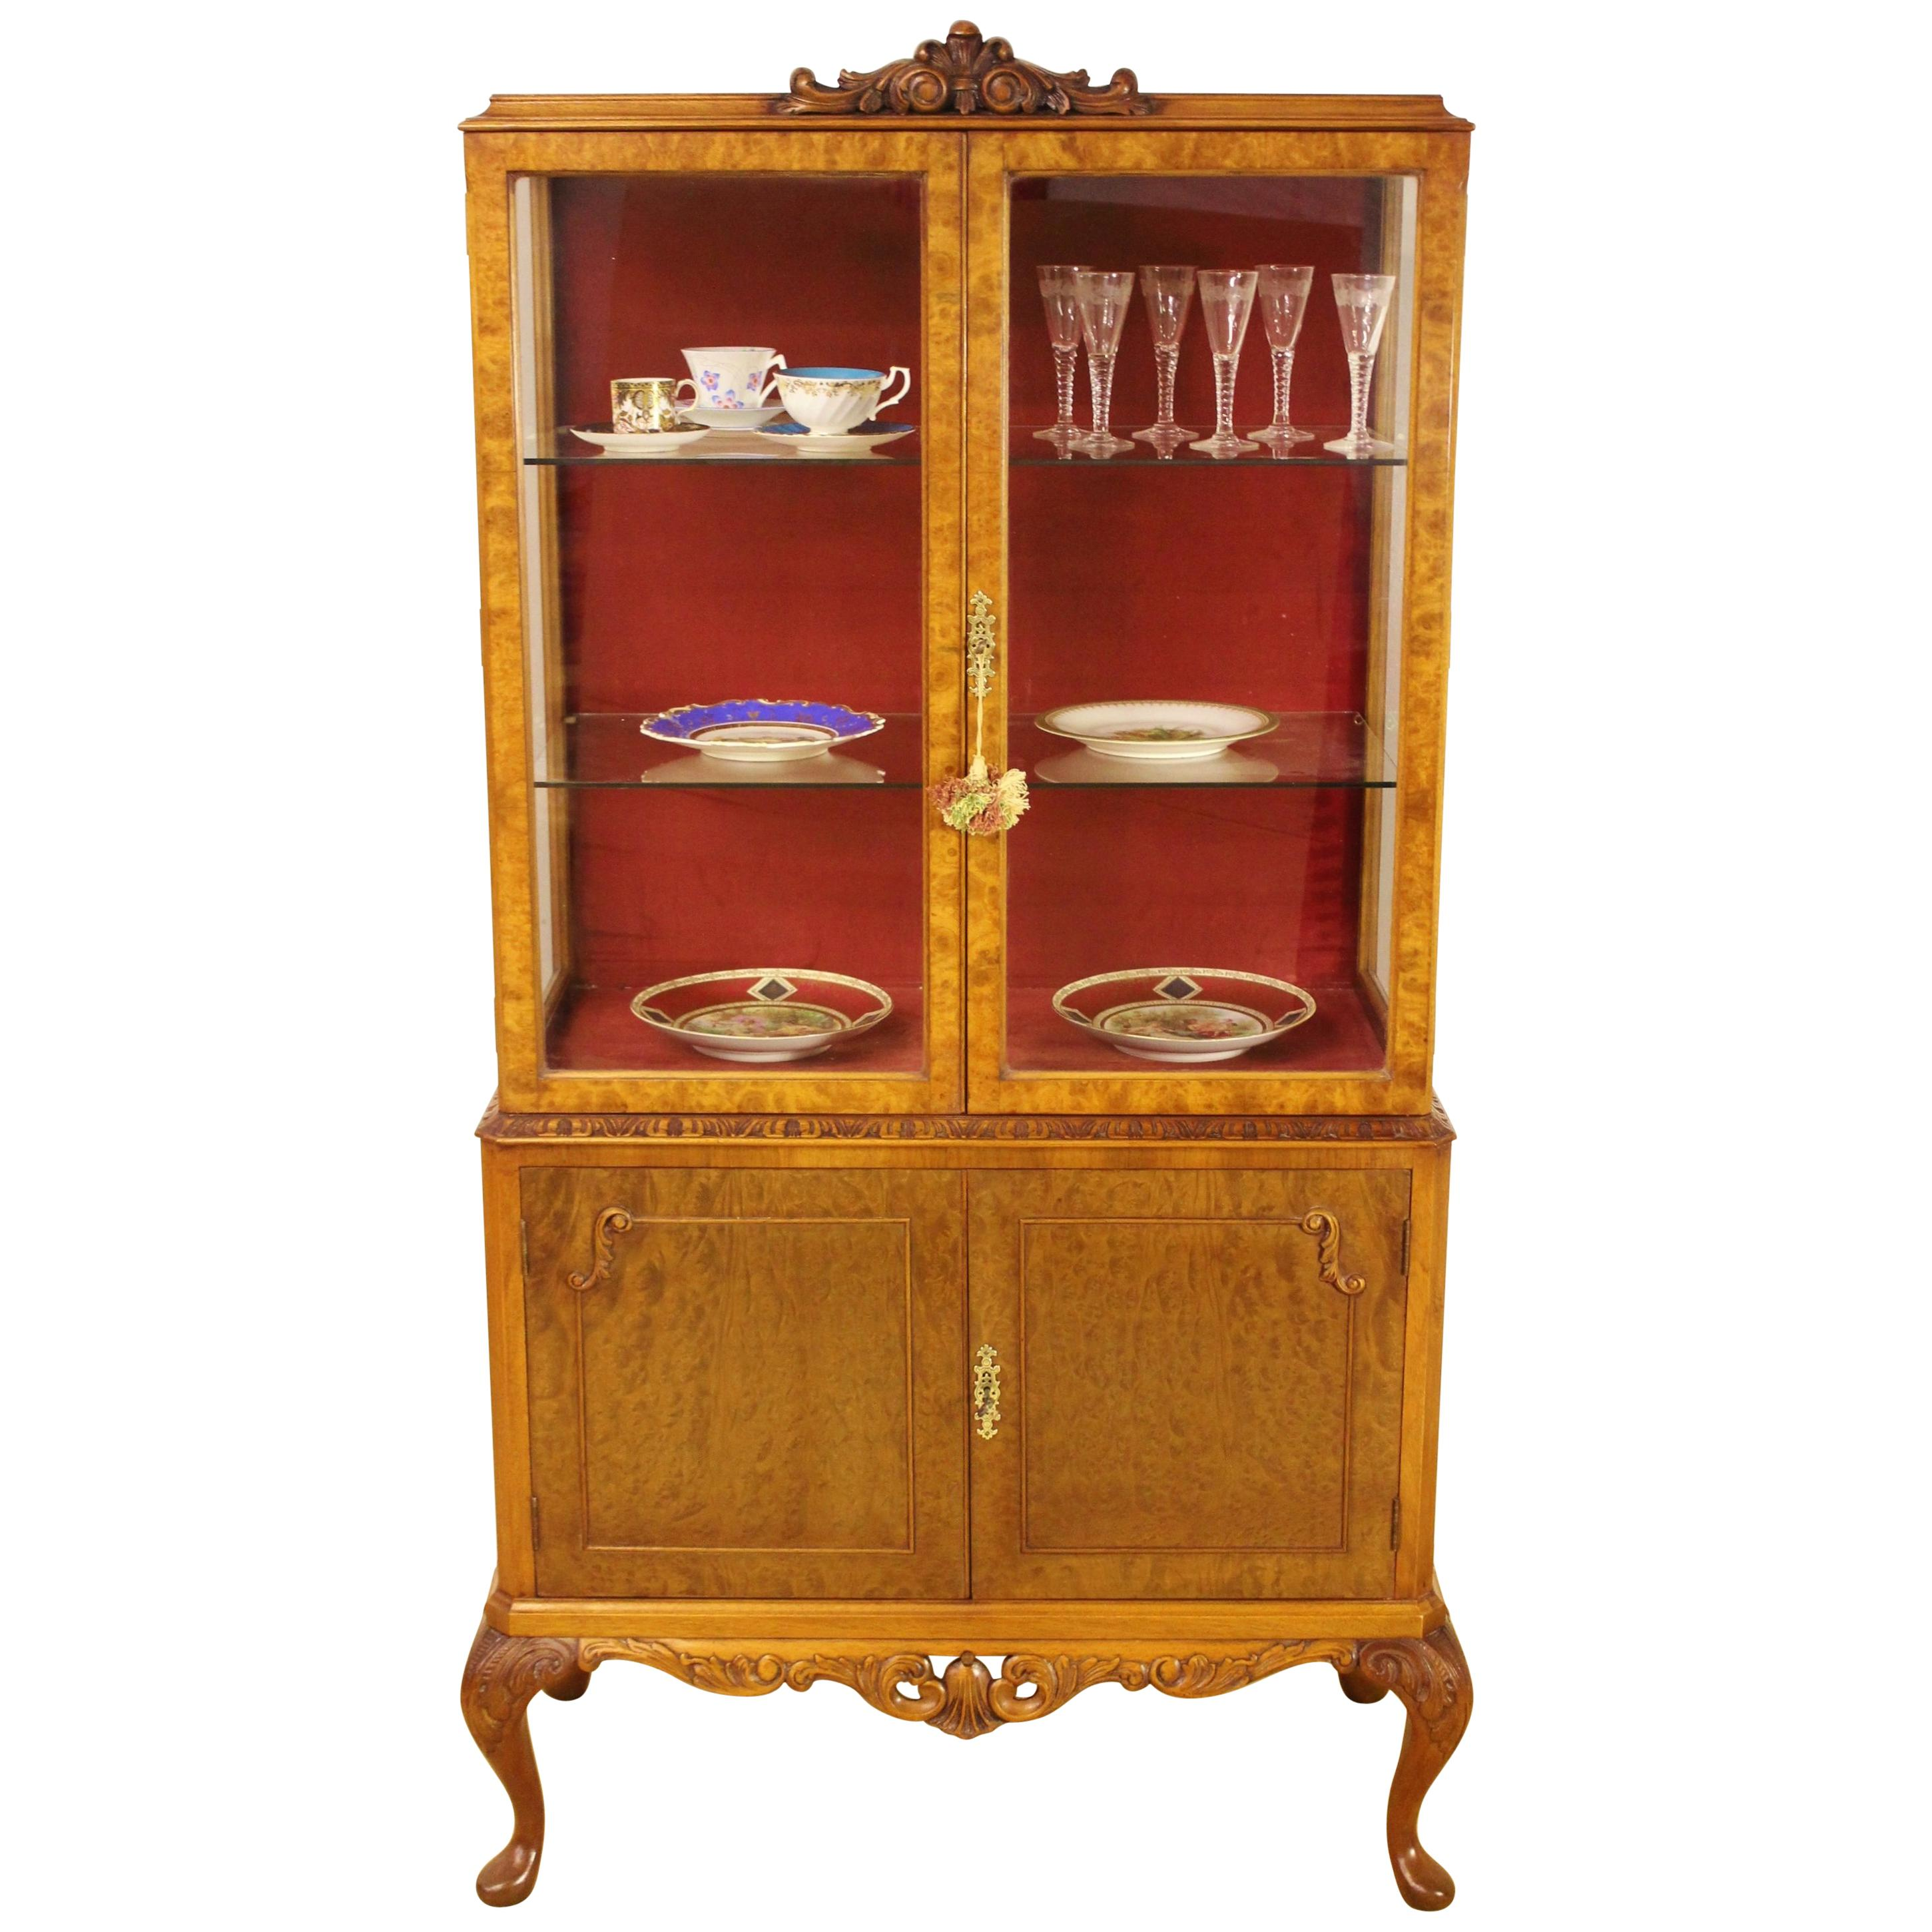 Superieur Early 20th Century Burr Walnut Queen Anne Style Display Cabinet